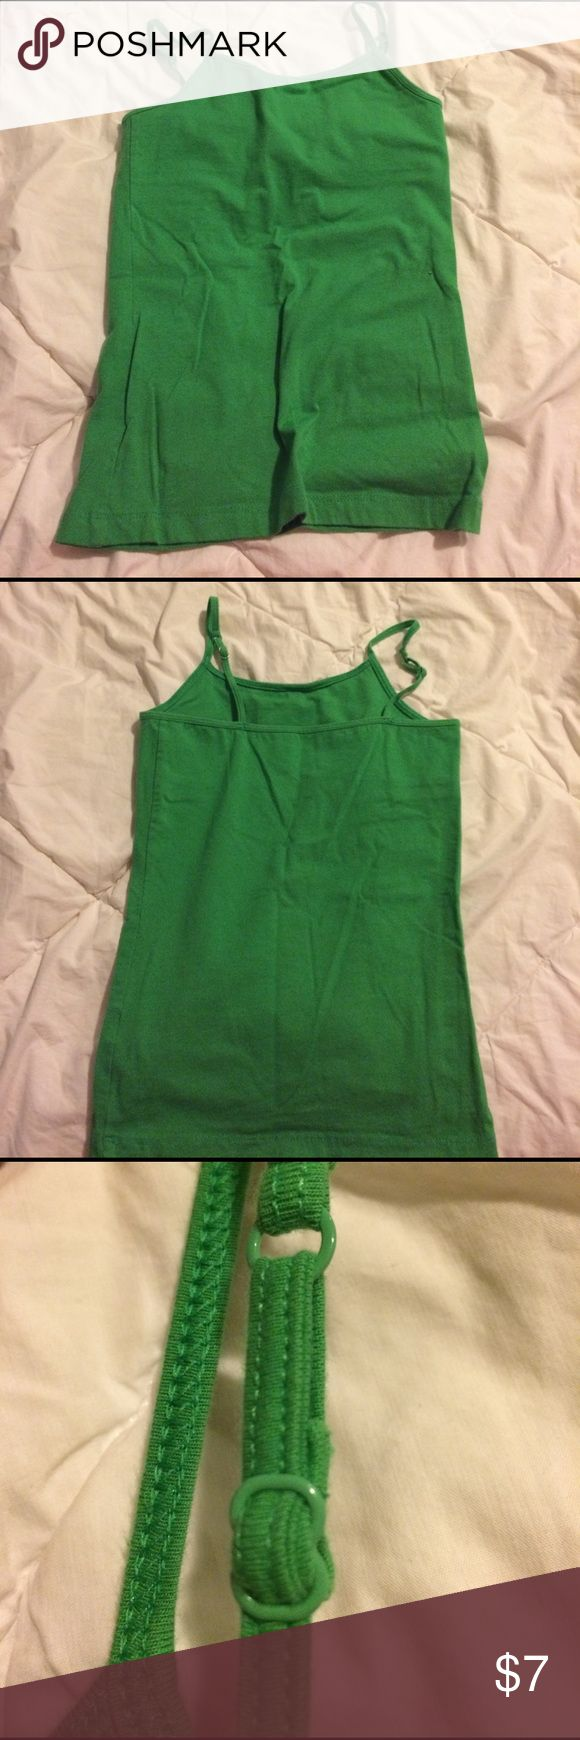 Girls green cami Girls green cami. Built in bra and adjustible straps (see pictures). Great for layering! Lightly worn.  size 10 Aeropostale Shirts & Tops Camisoles